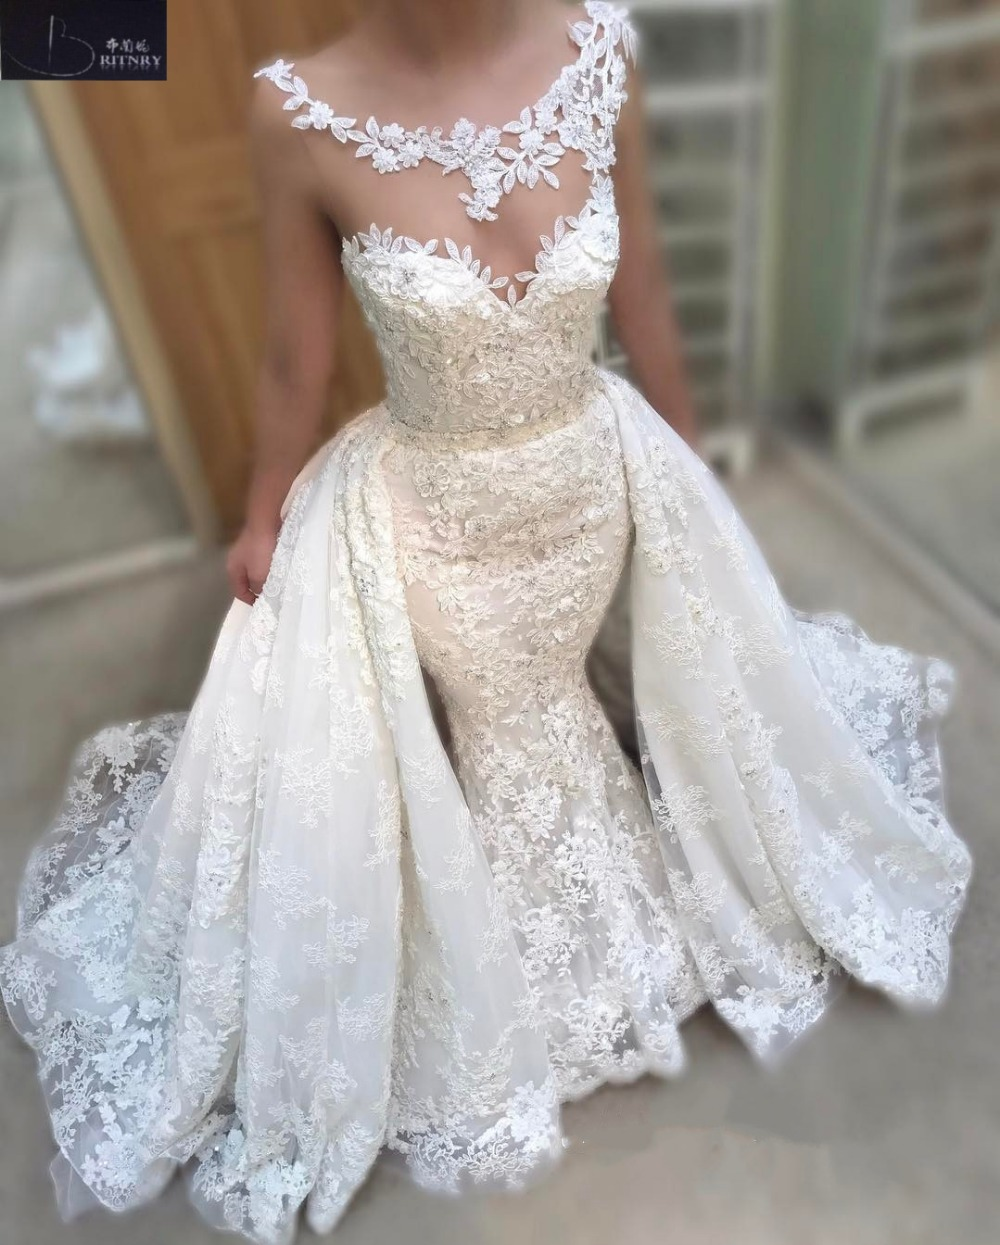 Detachable Trains For Wedding Gowns: Aliexpress.com : Buy Vintage Wedding Dress 2018 Lace